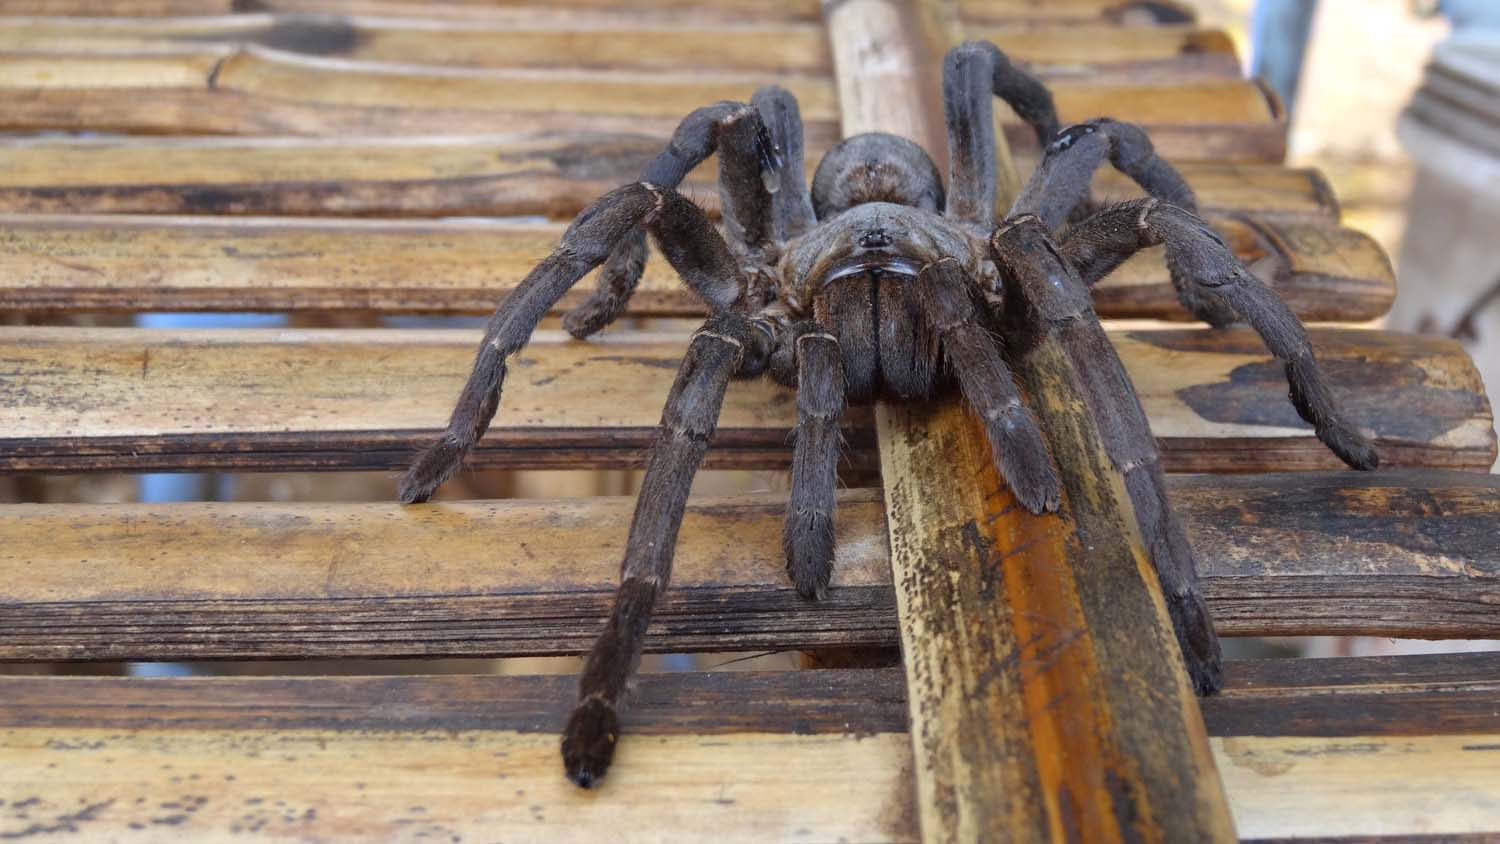 hairy spider, we ate his cousin